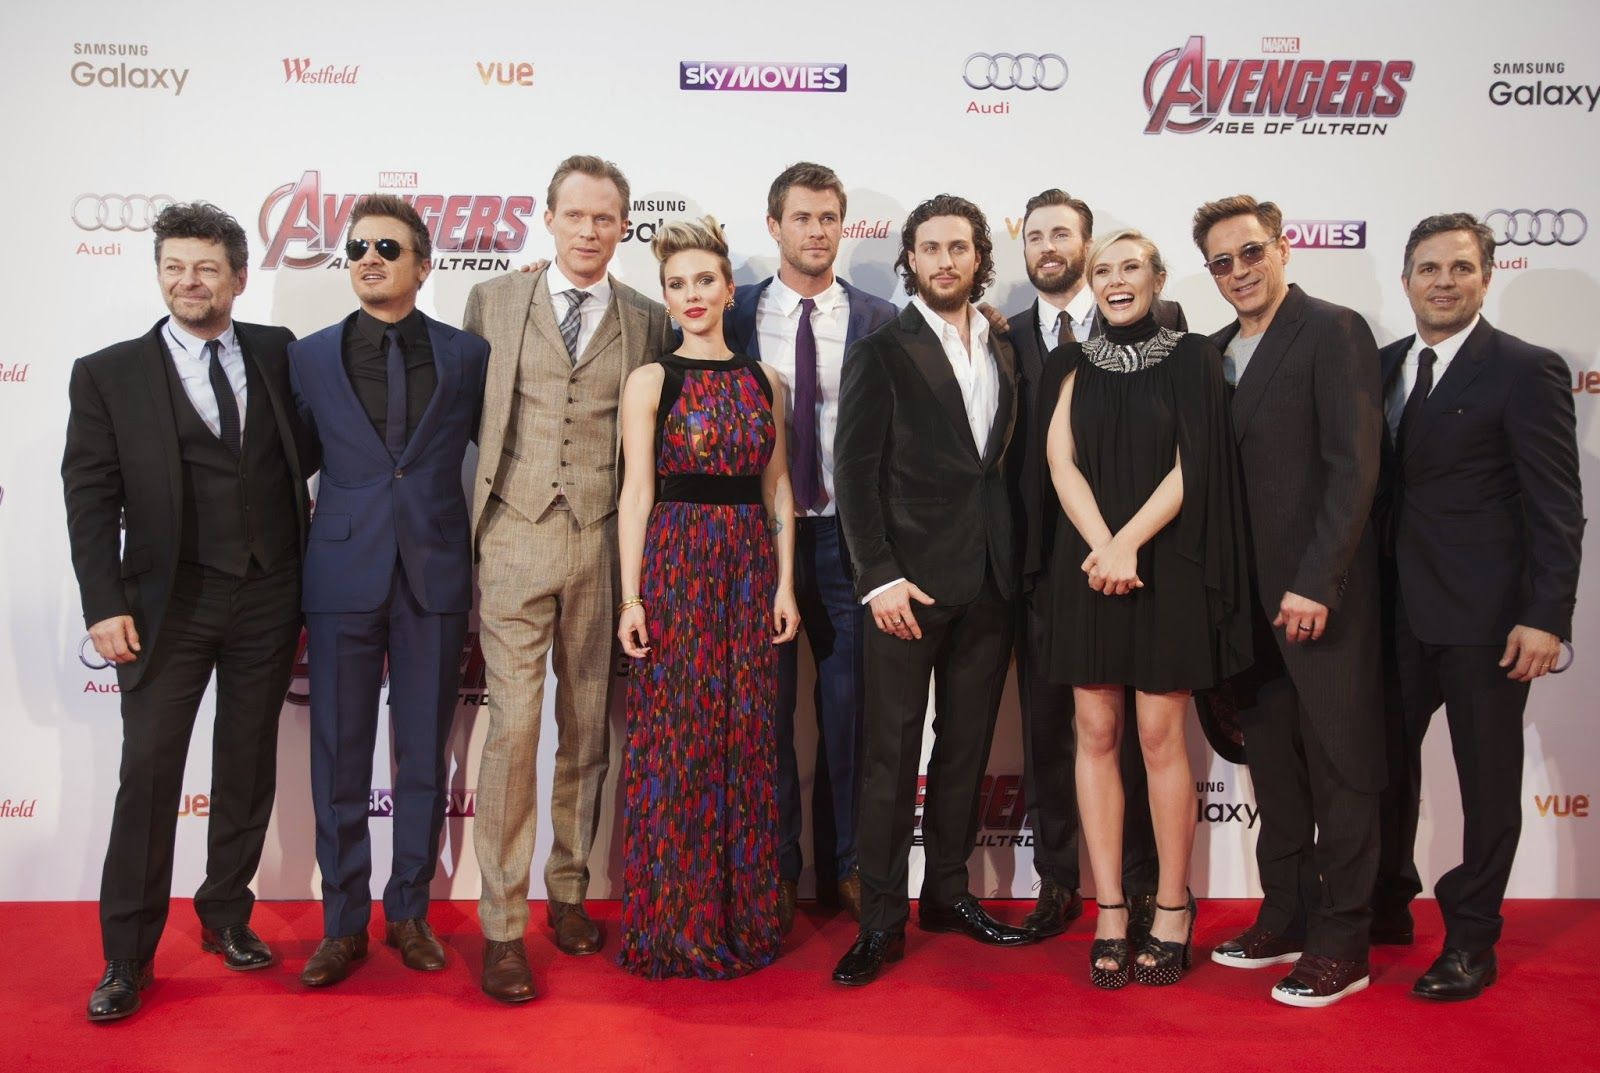 Marvel S Avengers Age Of Ultron London Red Carpet Photos Age Of Ultron Avengers Marvel Avengers